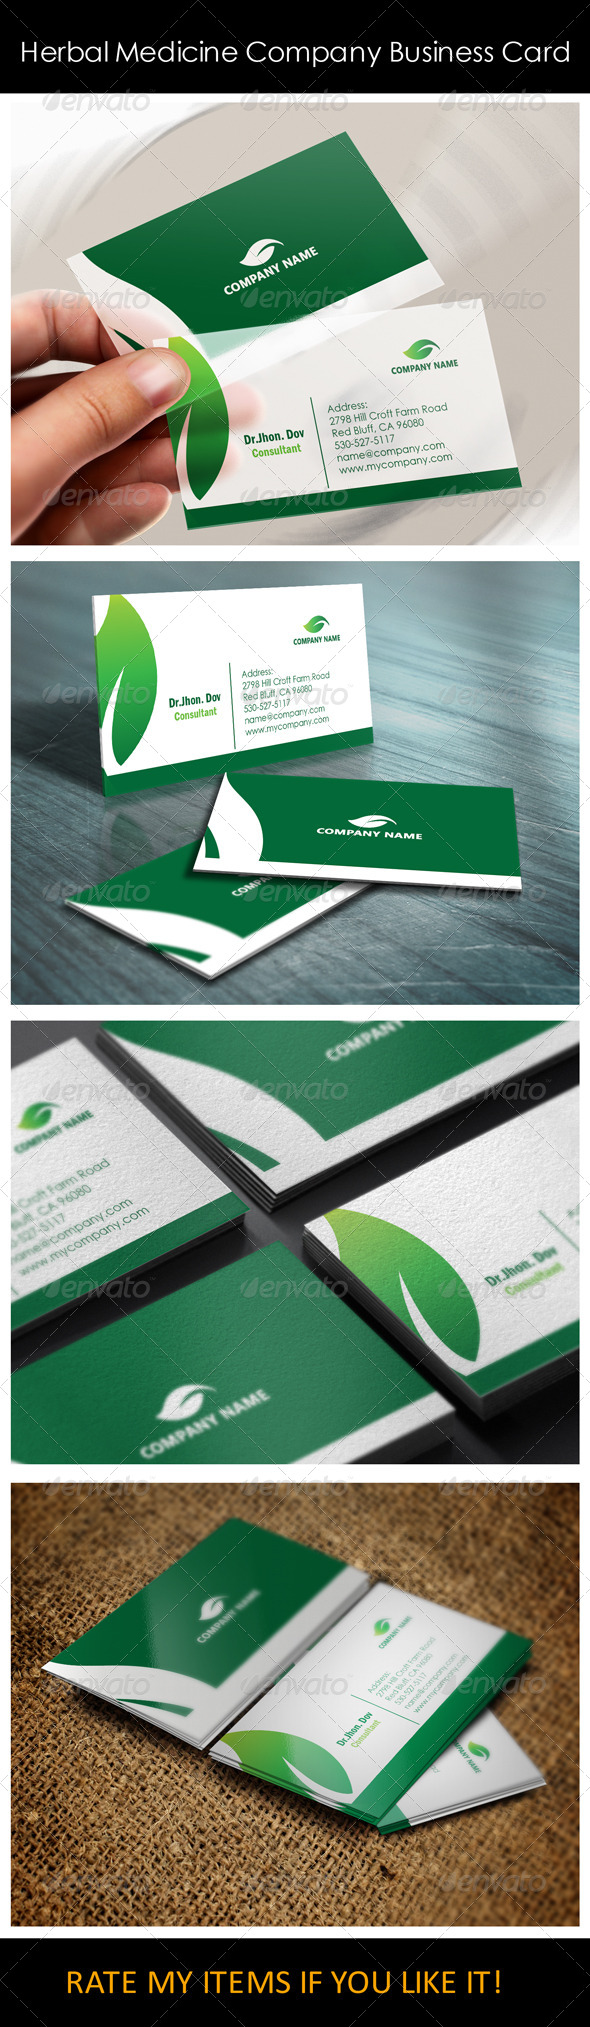 Herbal medicine company business card templates by shujaktk herbal medicine company business card templates corporate business cards cheaphphosting